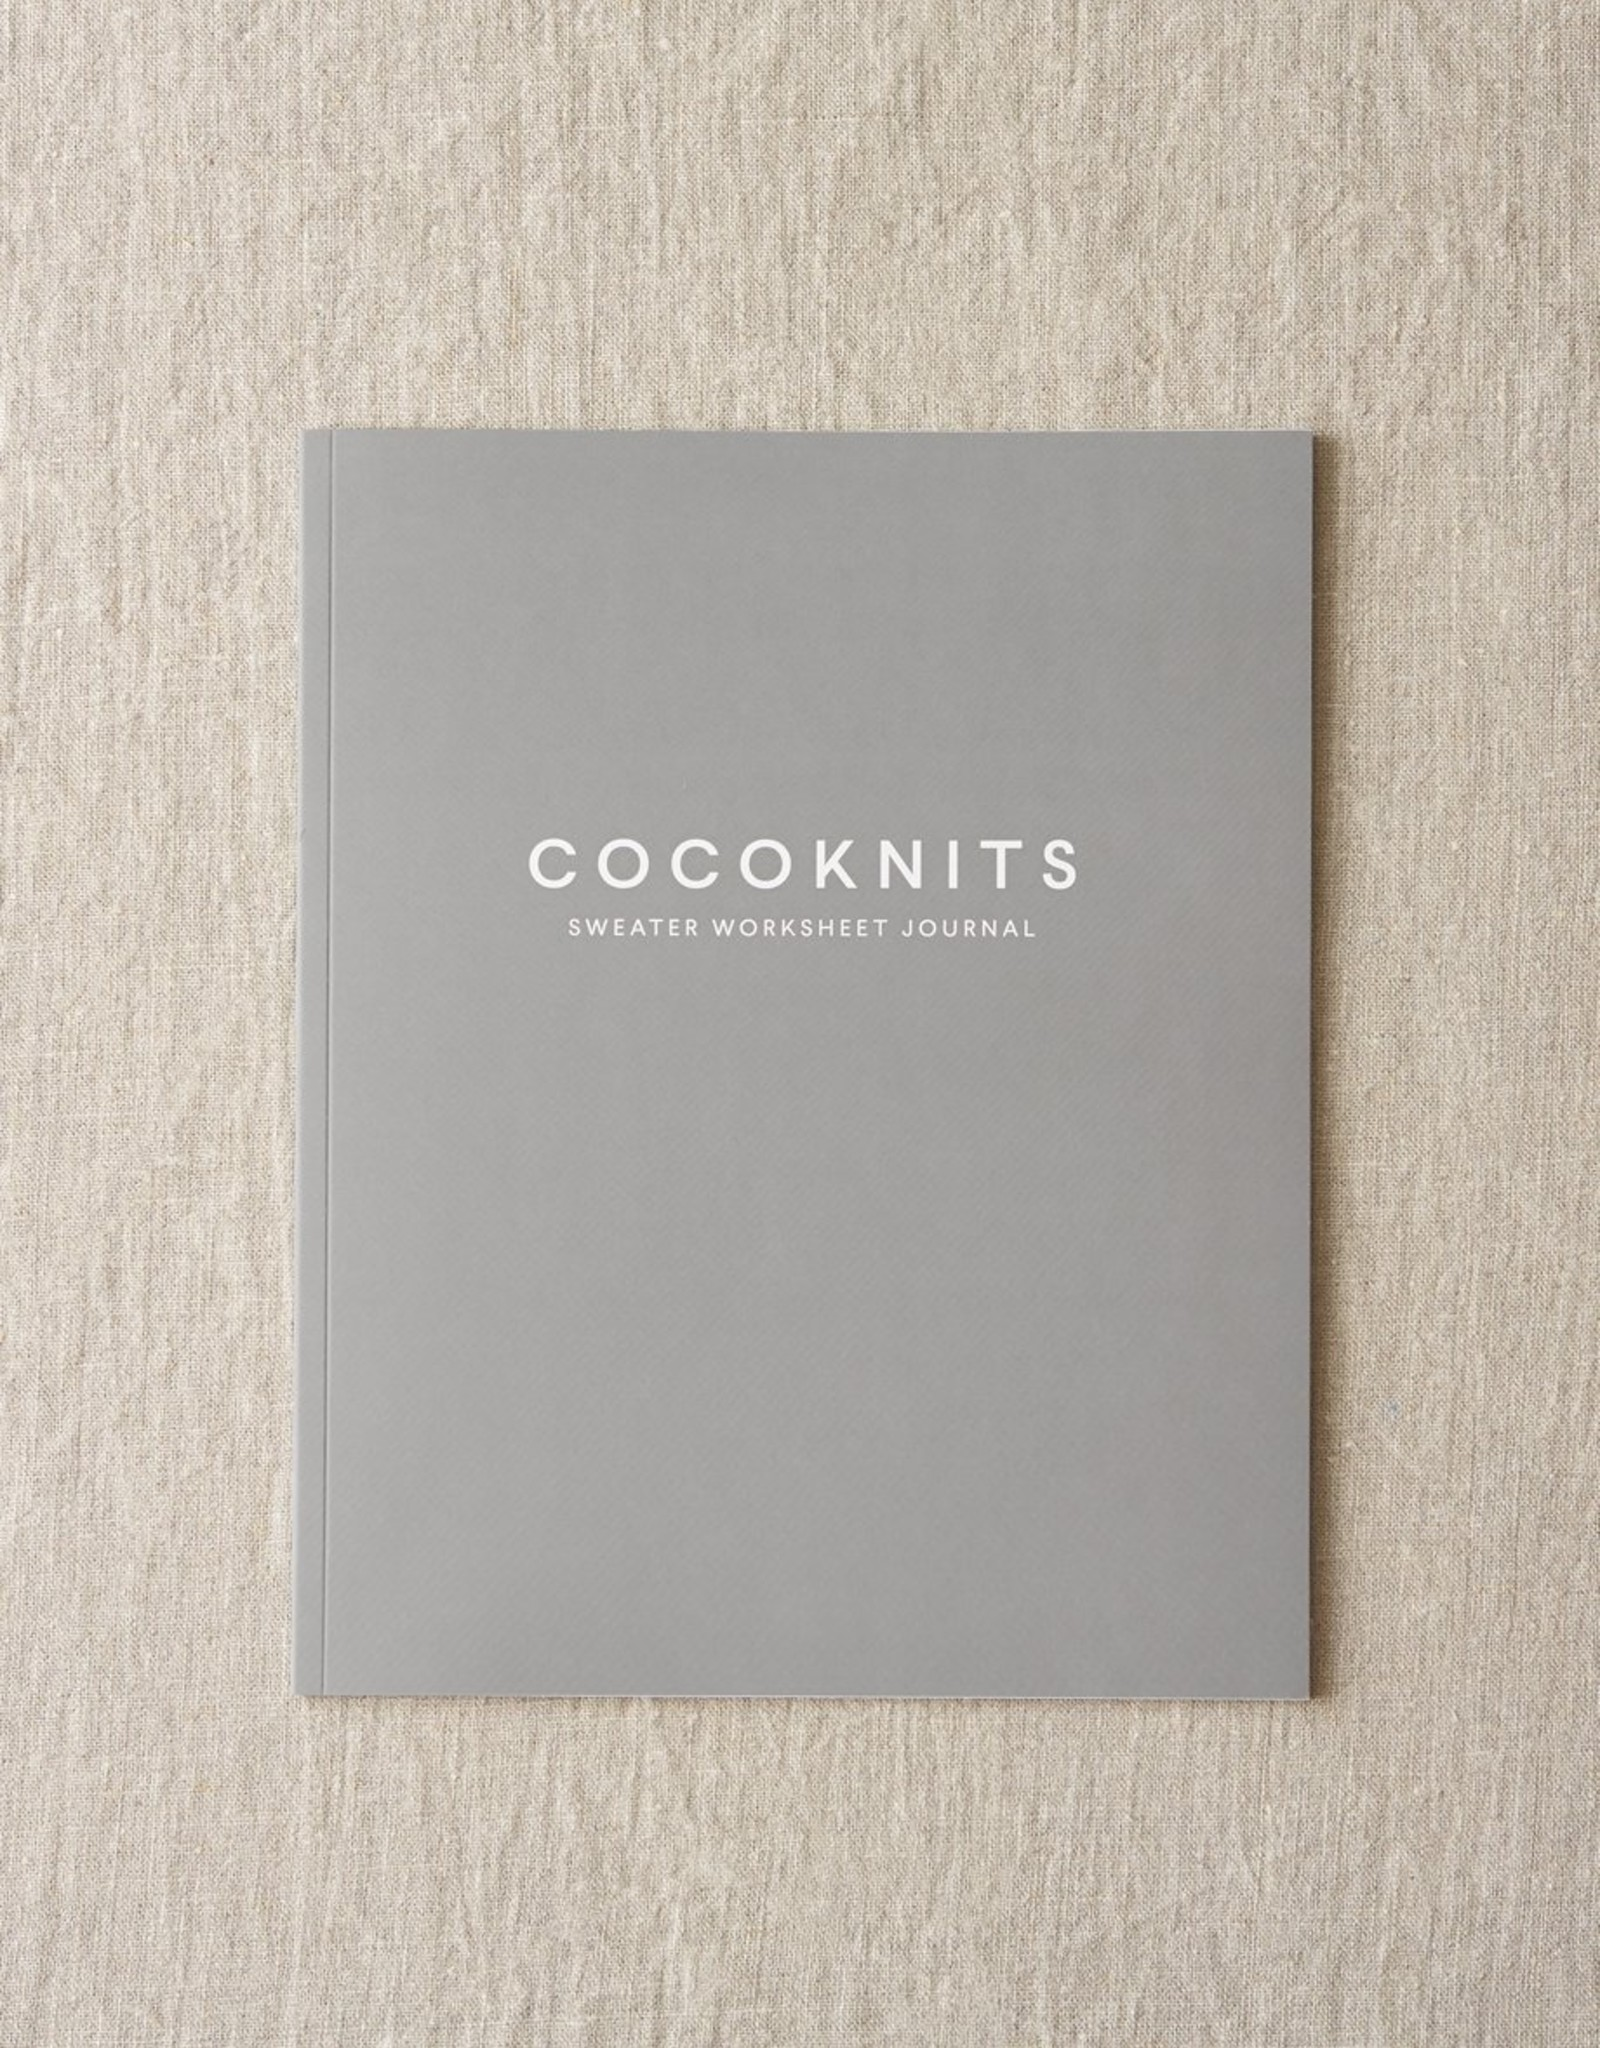 Cocoknits Cocoknits Sweater Worksheet Journal